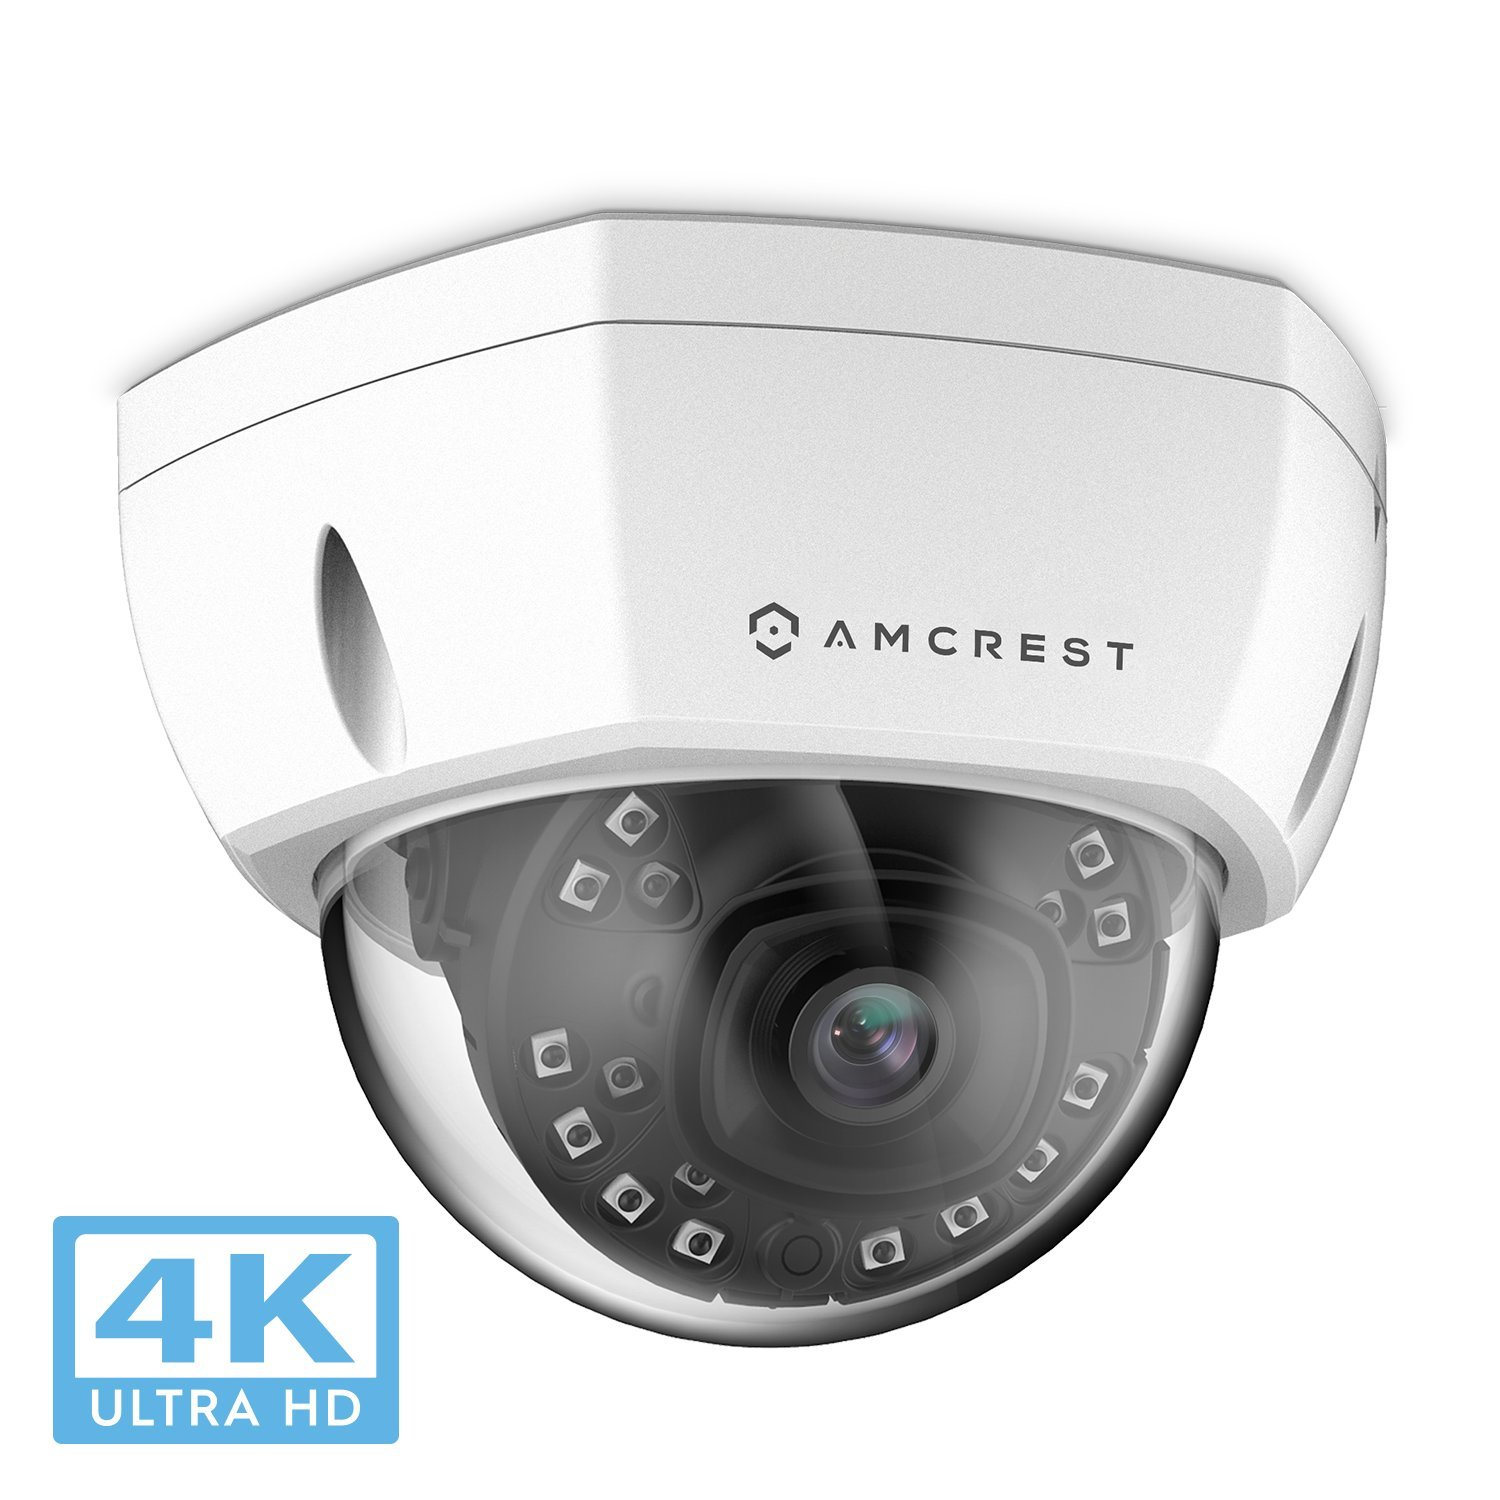 Amcrest UltraHD 4K (8MP) Outdoor Security POE IP Camera, 3840x2160, 98ft NightVision, 2.8mm Lens, IP67 Weatherproof, IK10 Vandal Resistant Dome, MicroSD Recording, White (IP8M-2493EW) by Amcrest